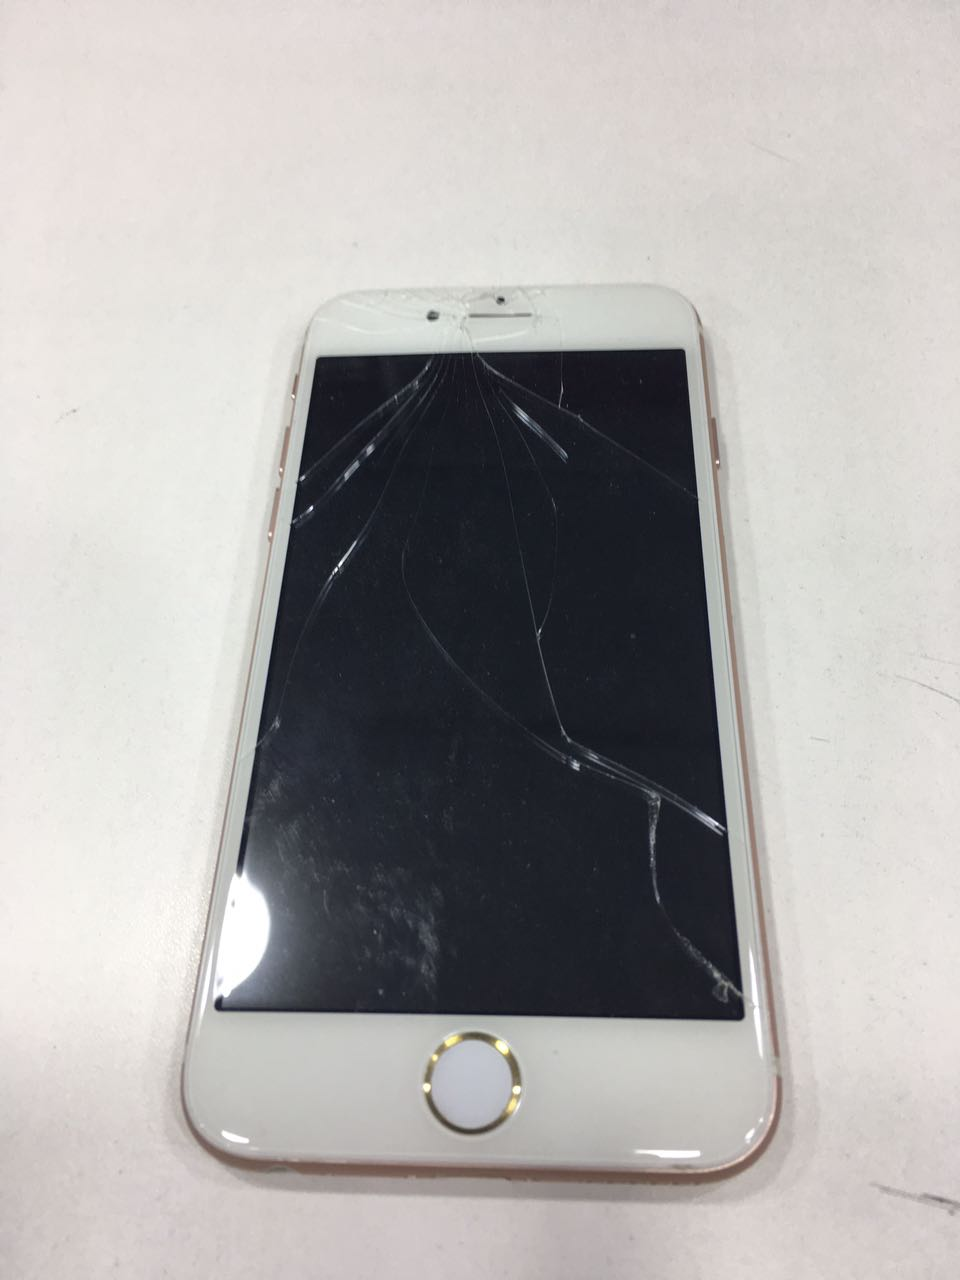 How Much Is It To Fix An Iphone Screen